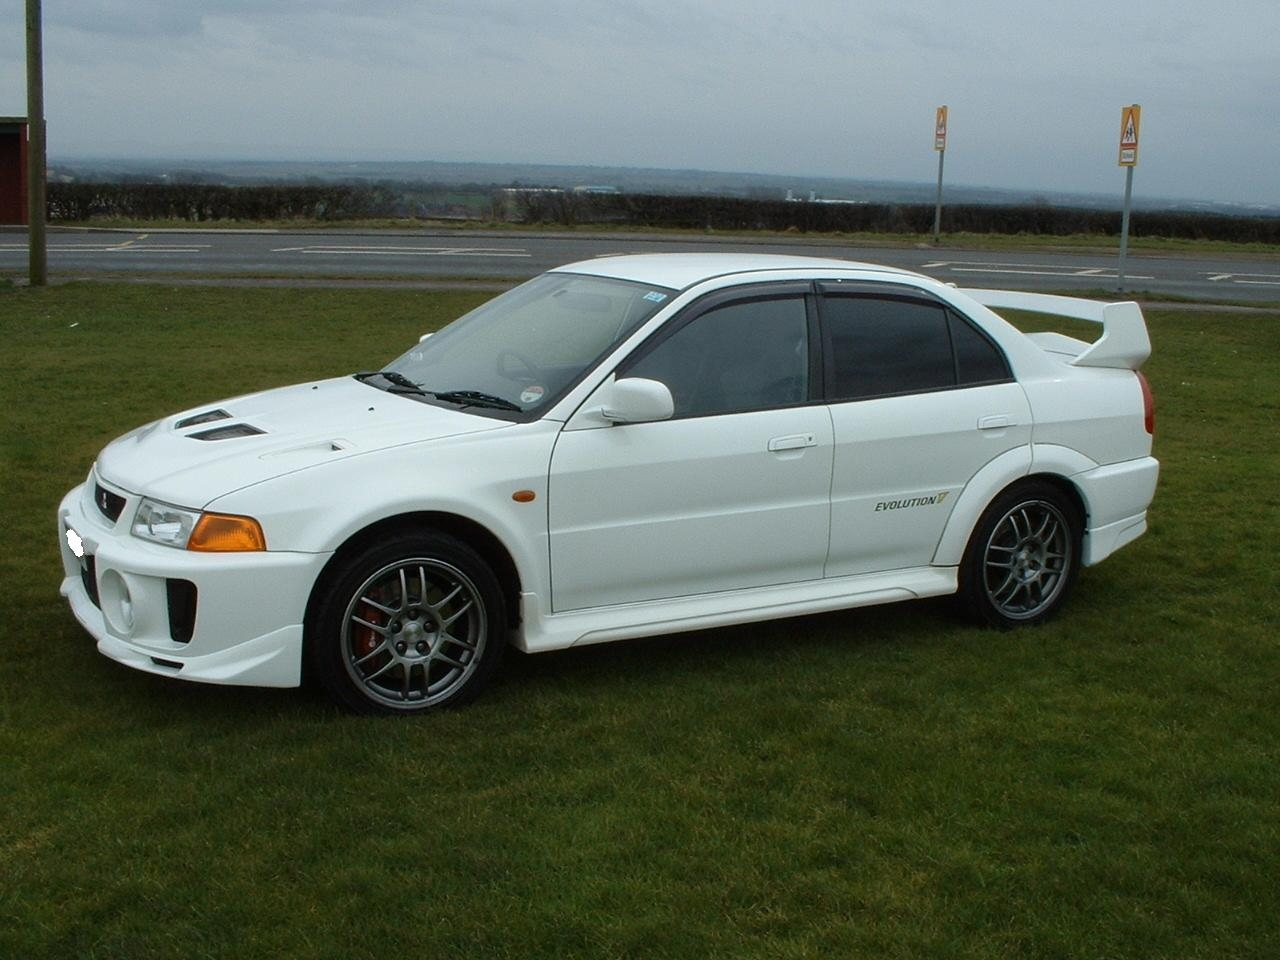 Lancer 1995 Model >> 1998 Mitsubishi Lancer Evolution - Pictures - CarGurus